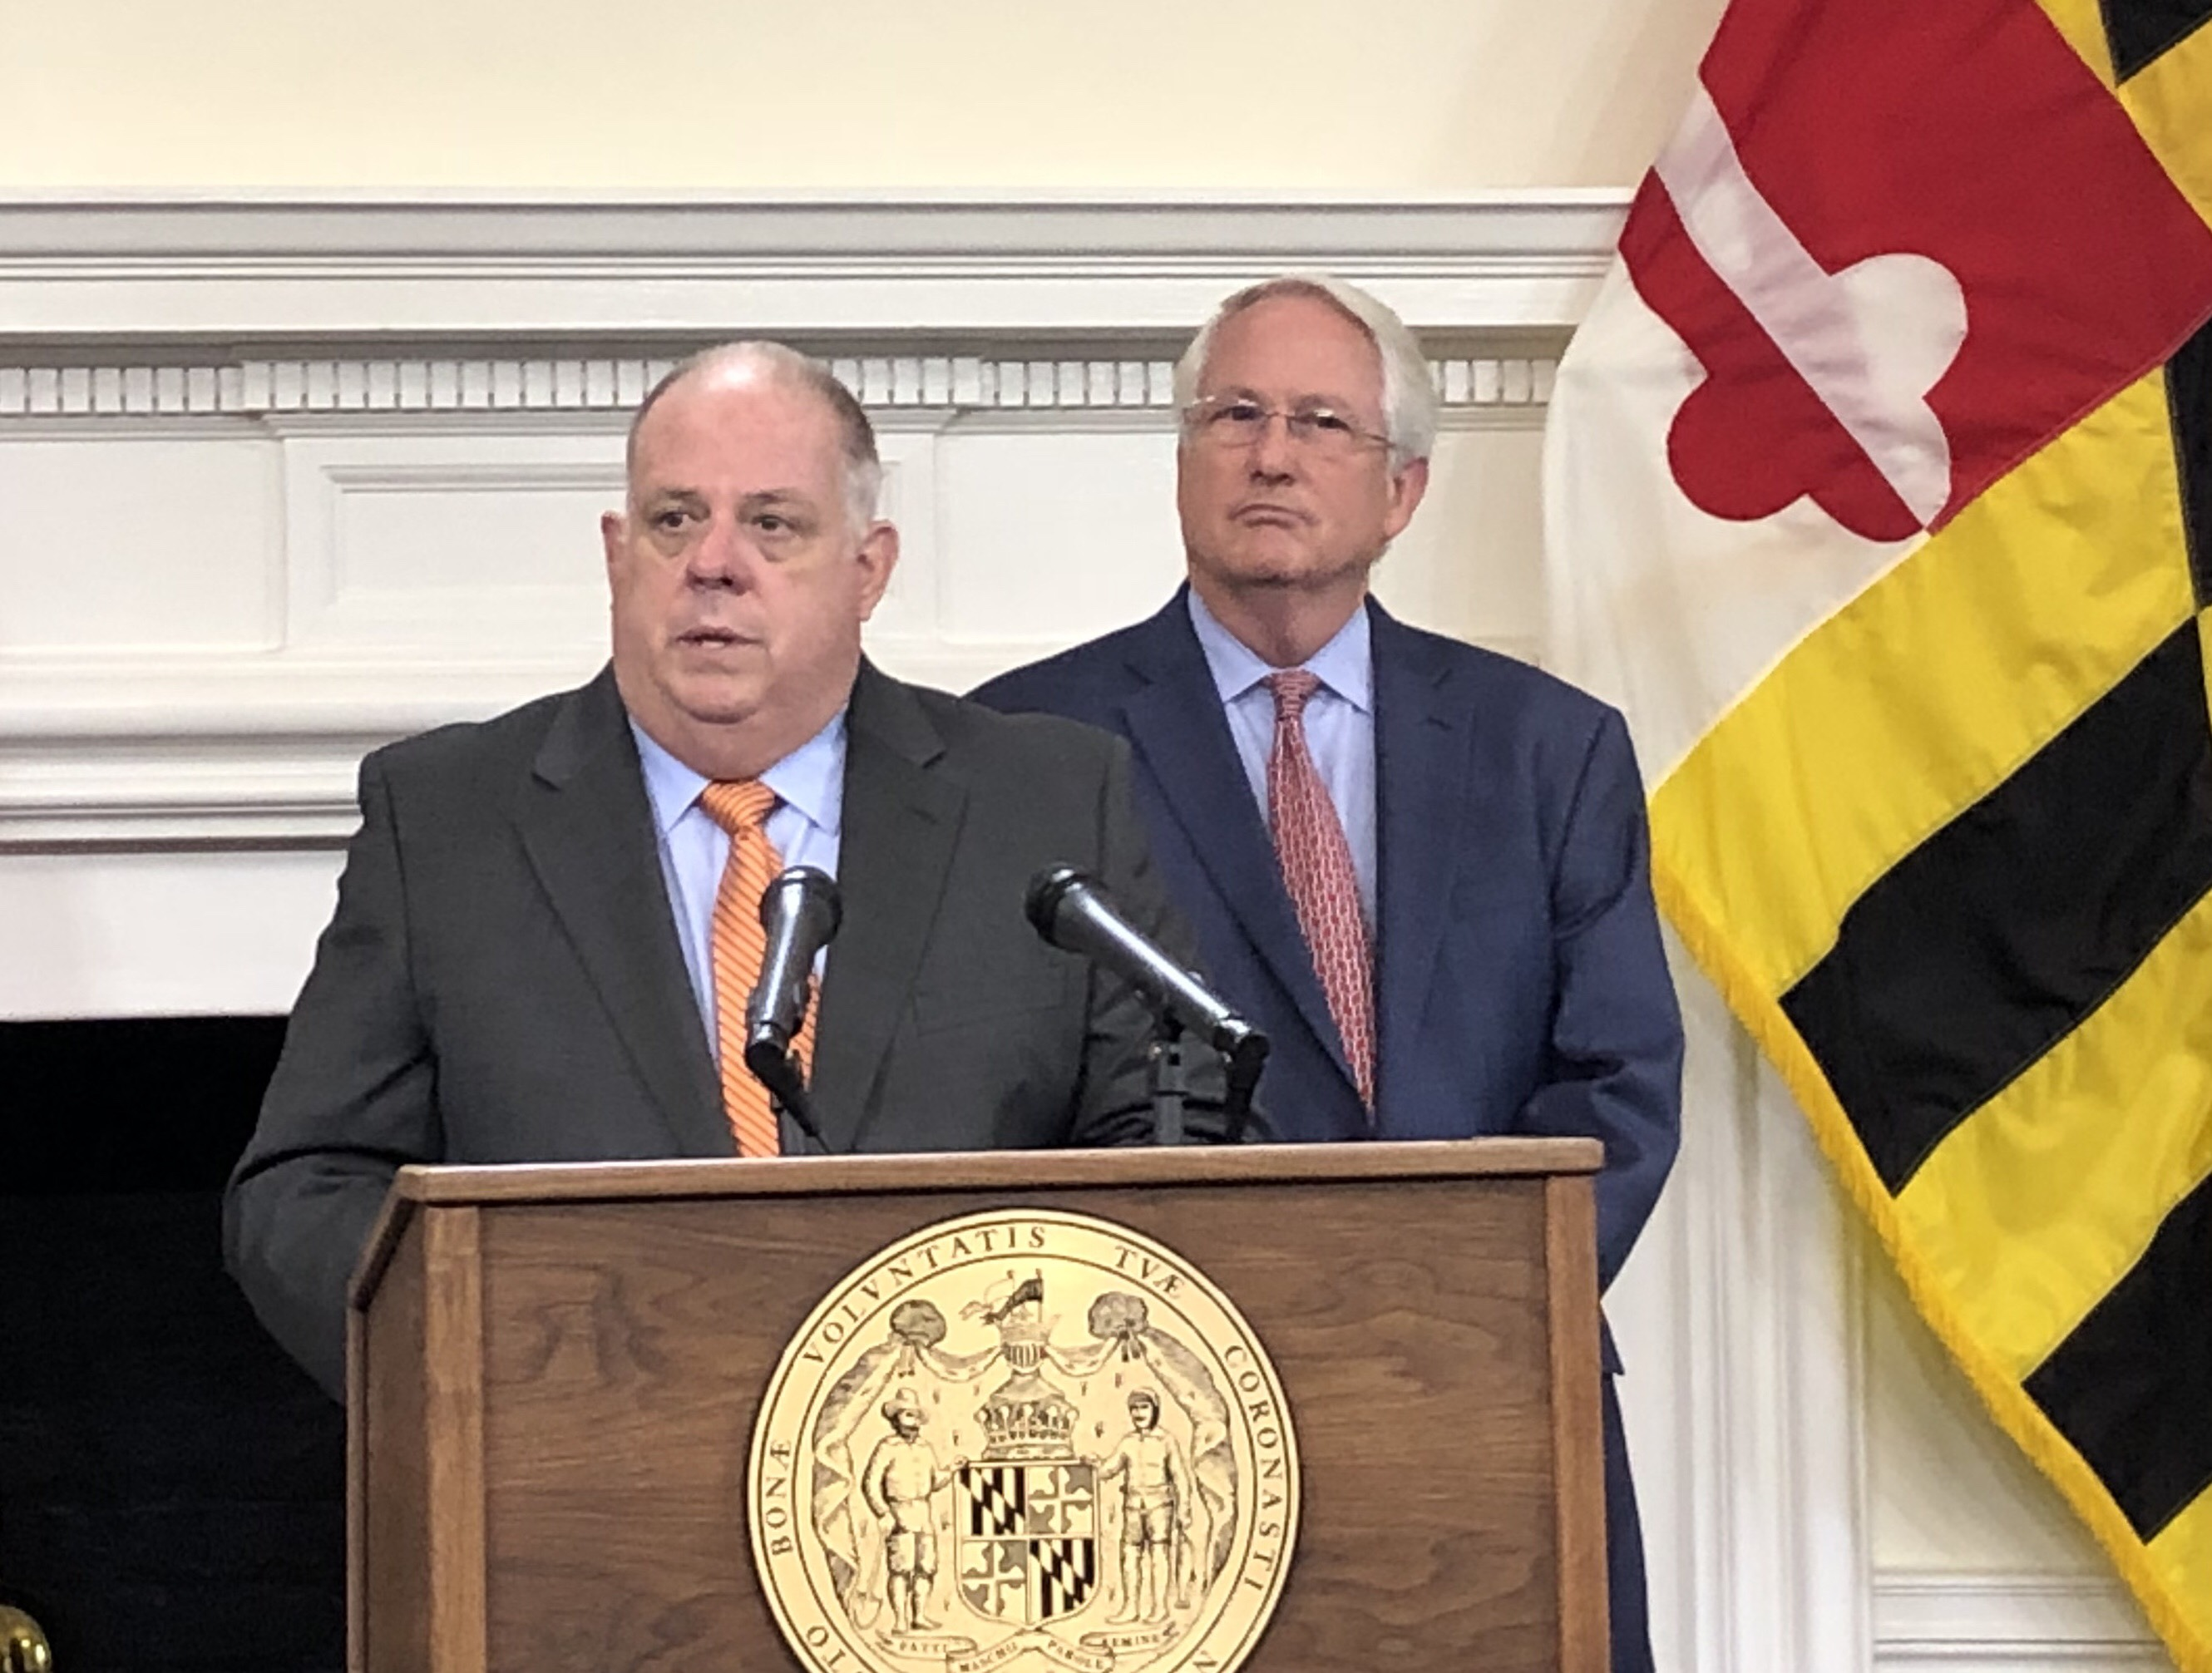 Maryland Gov. Larry Hogan and Maryland Insurance Commissioner Al Redmer announce lower premiums for healthcare plans at a news conference on Friday, Sept. 21, 2018. (Brooks DuBose/Capital News Service)